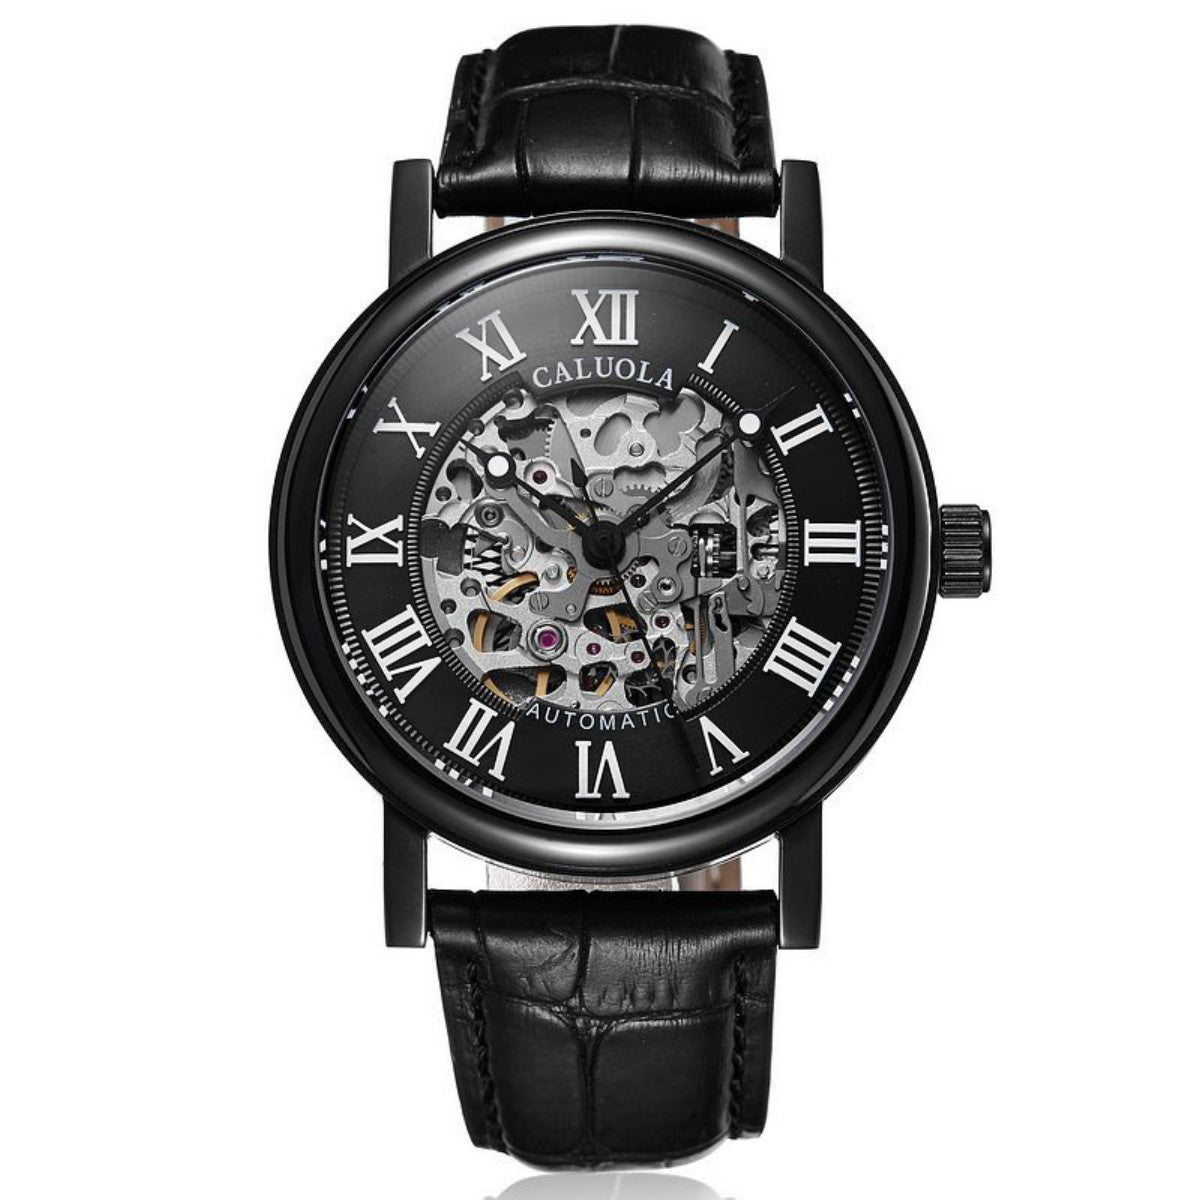 Caluola Men Watch Automatic Skeleton Dial Fashion Watch CA1089MM